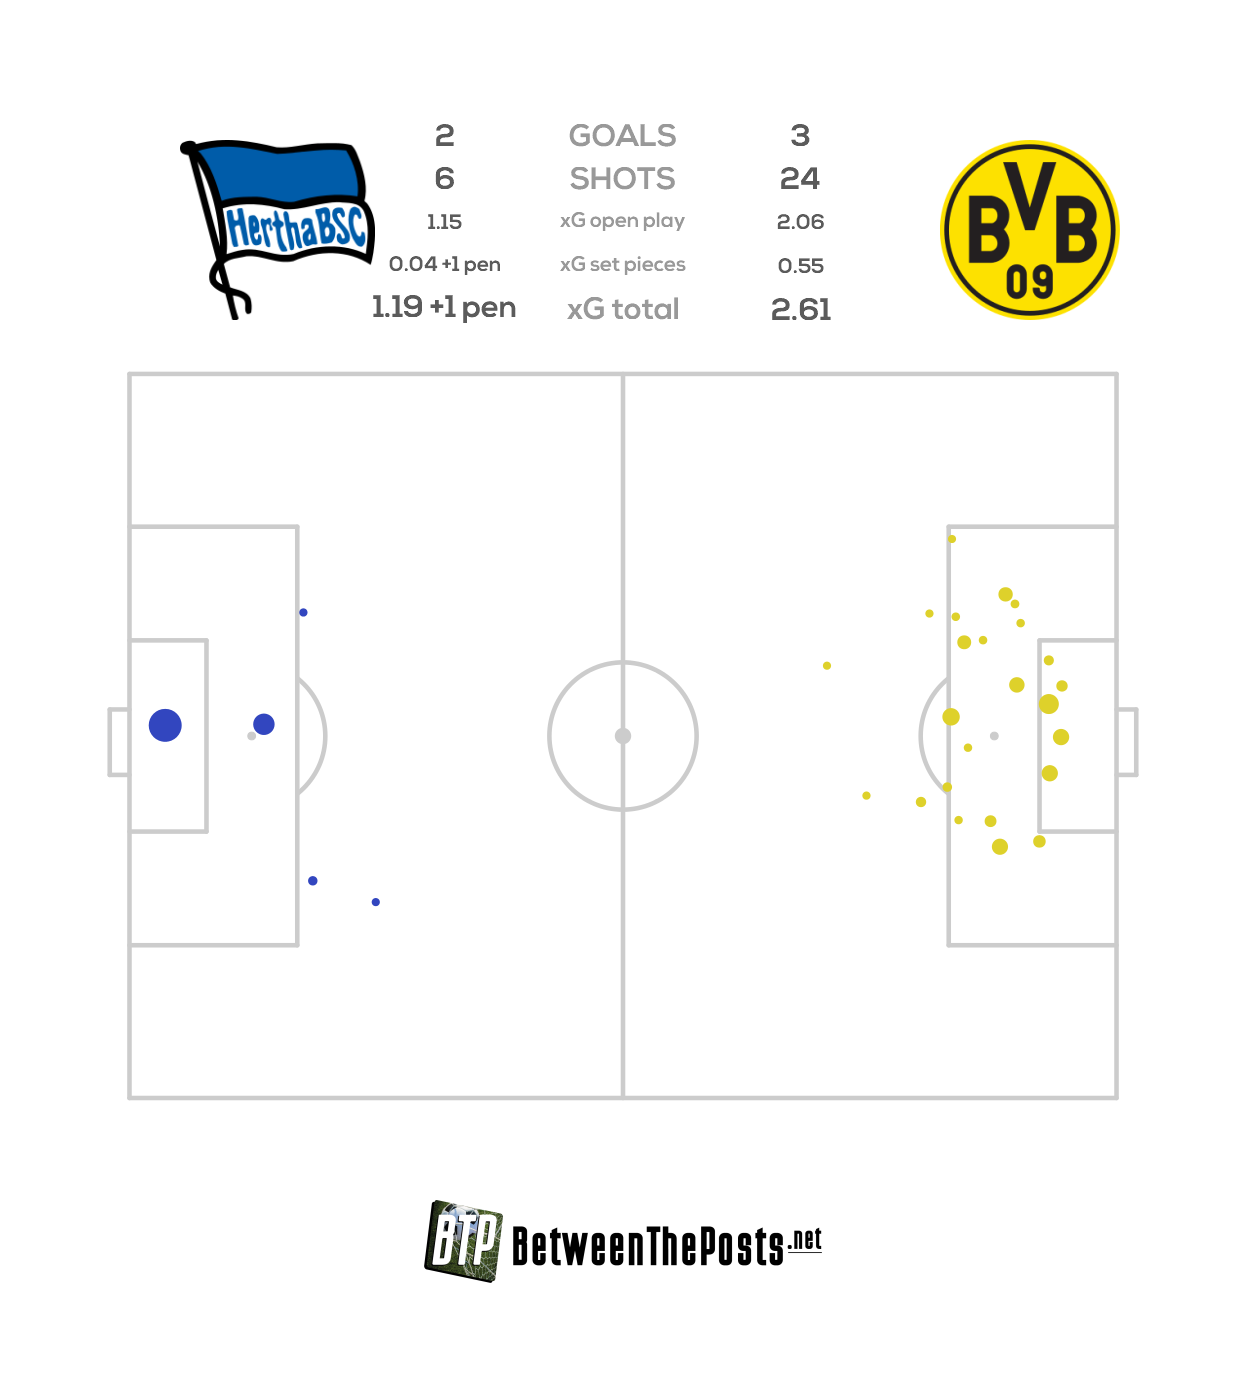 Expected goals pitch plot Hertha BSC - Borussia Dortmund 2-3 Bundesliga